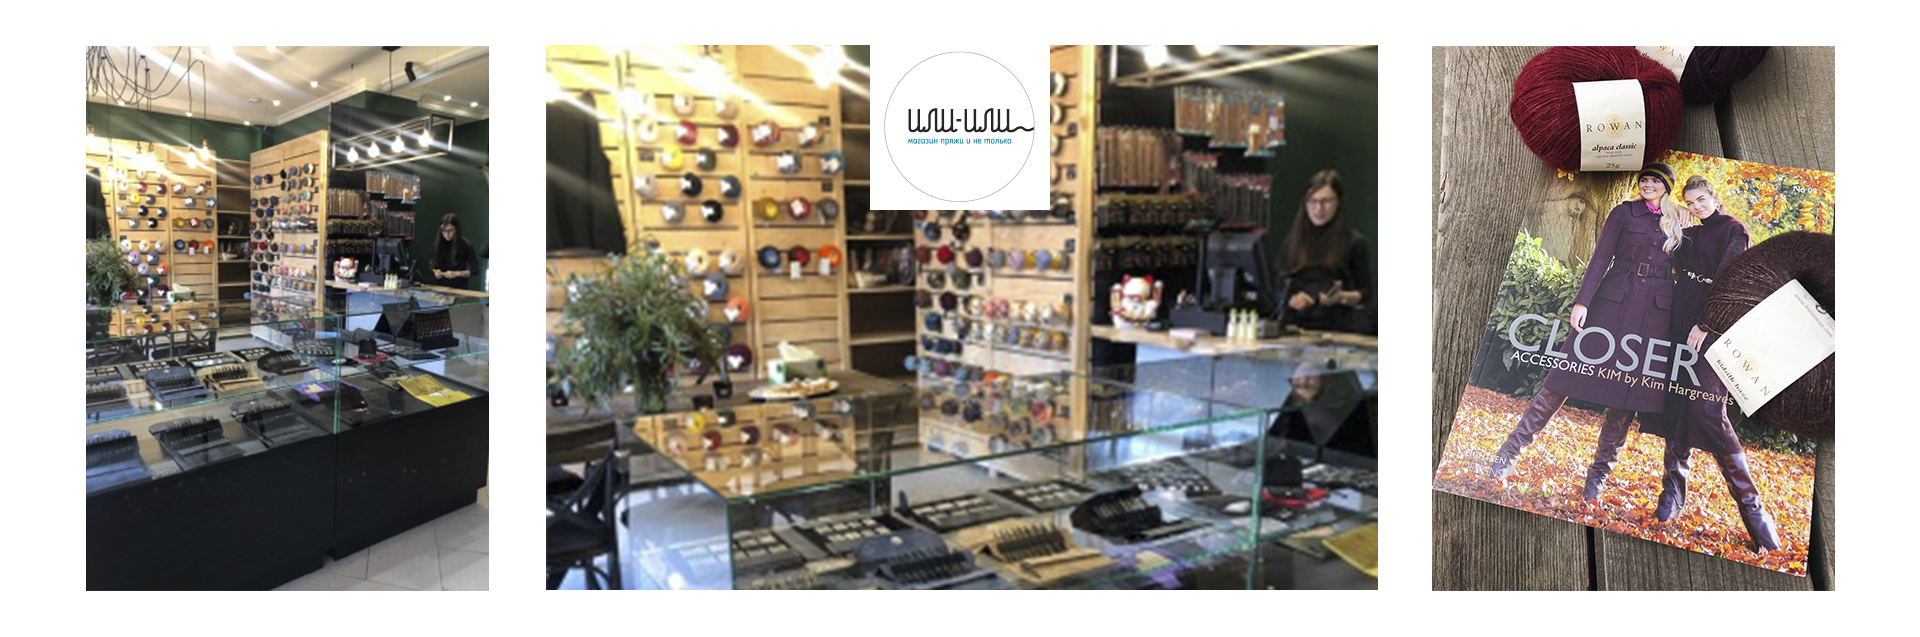 "Our salon-shop ""Ili-Ili"" presents high-quality products for needlework from leading manufacturers."